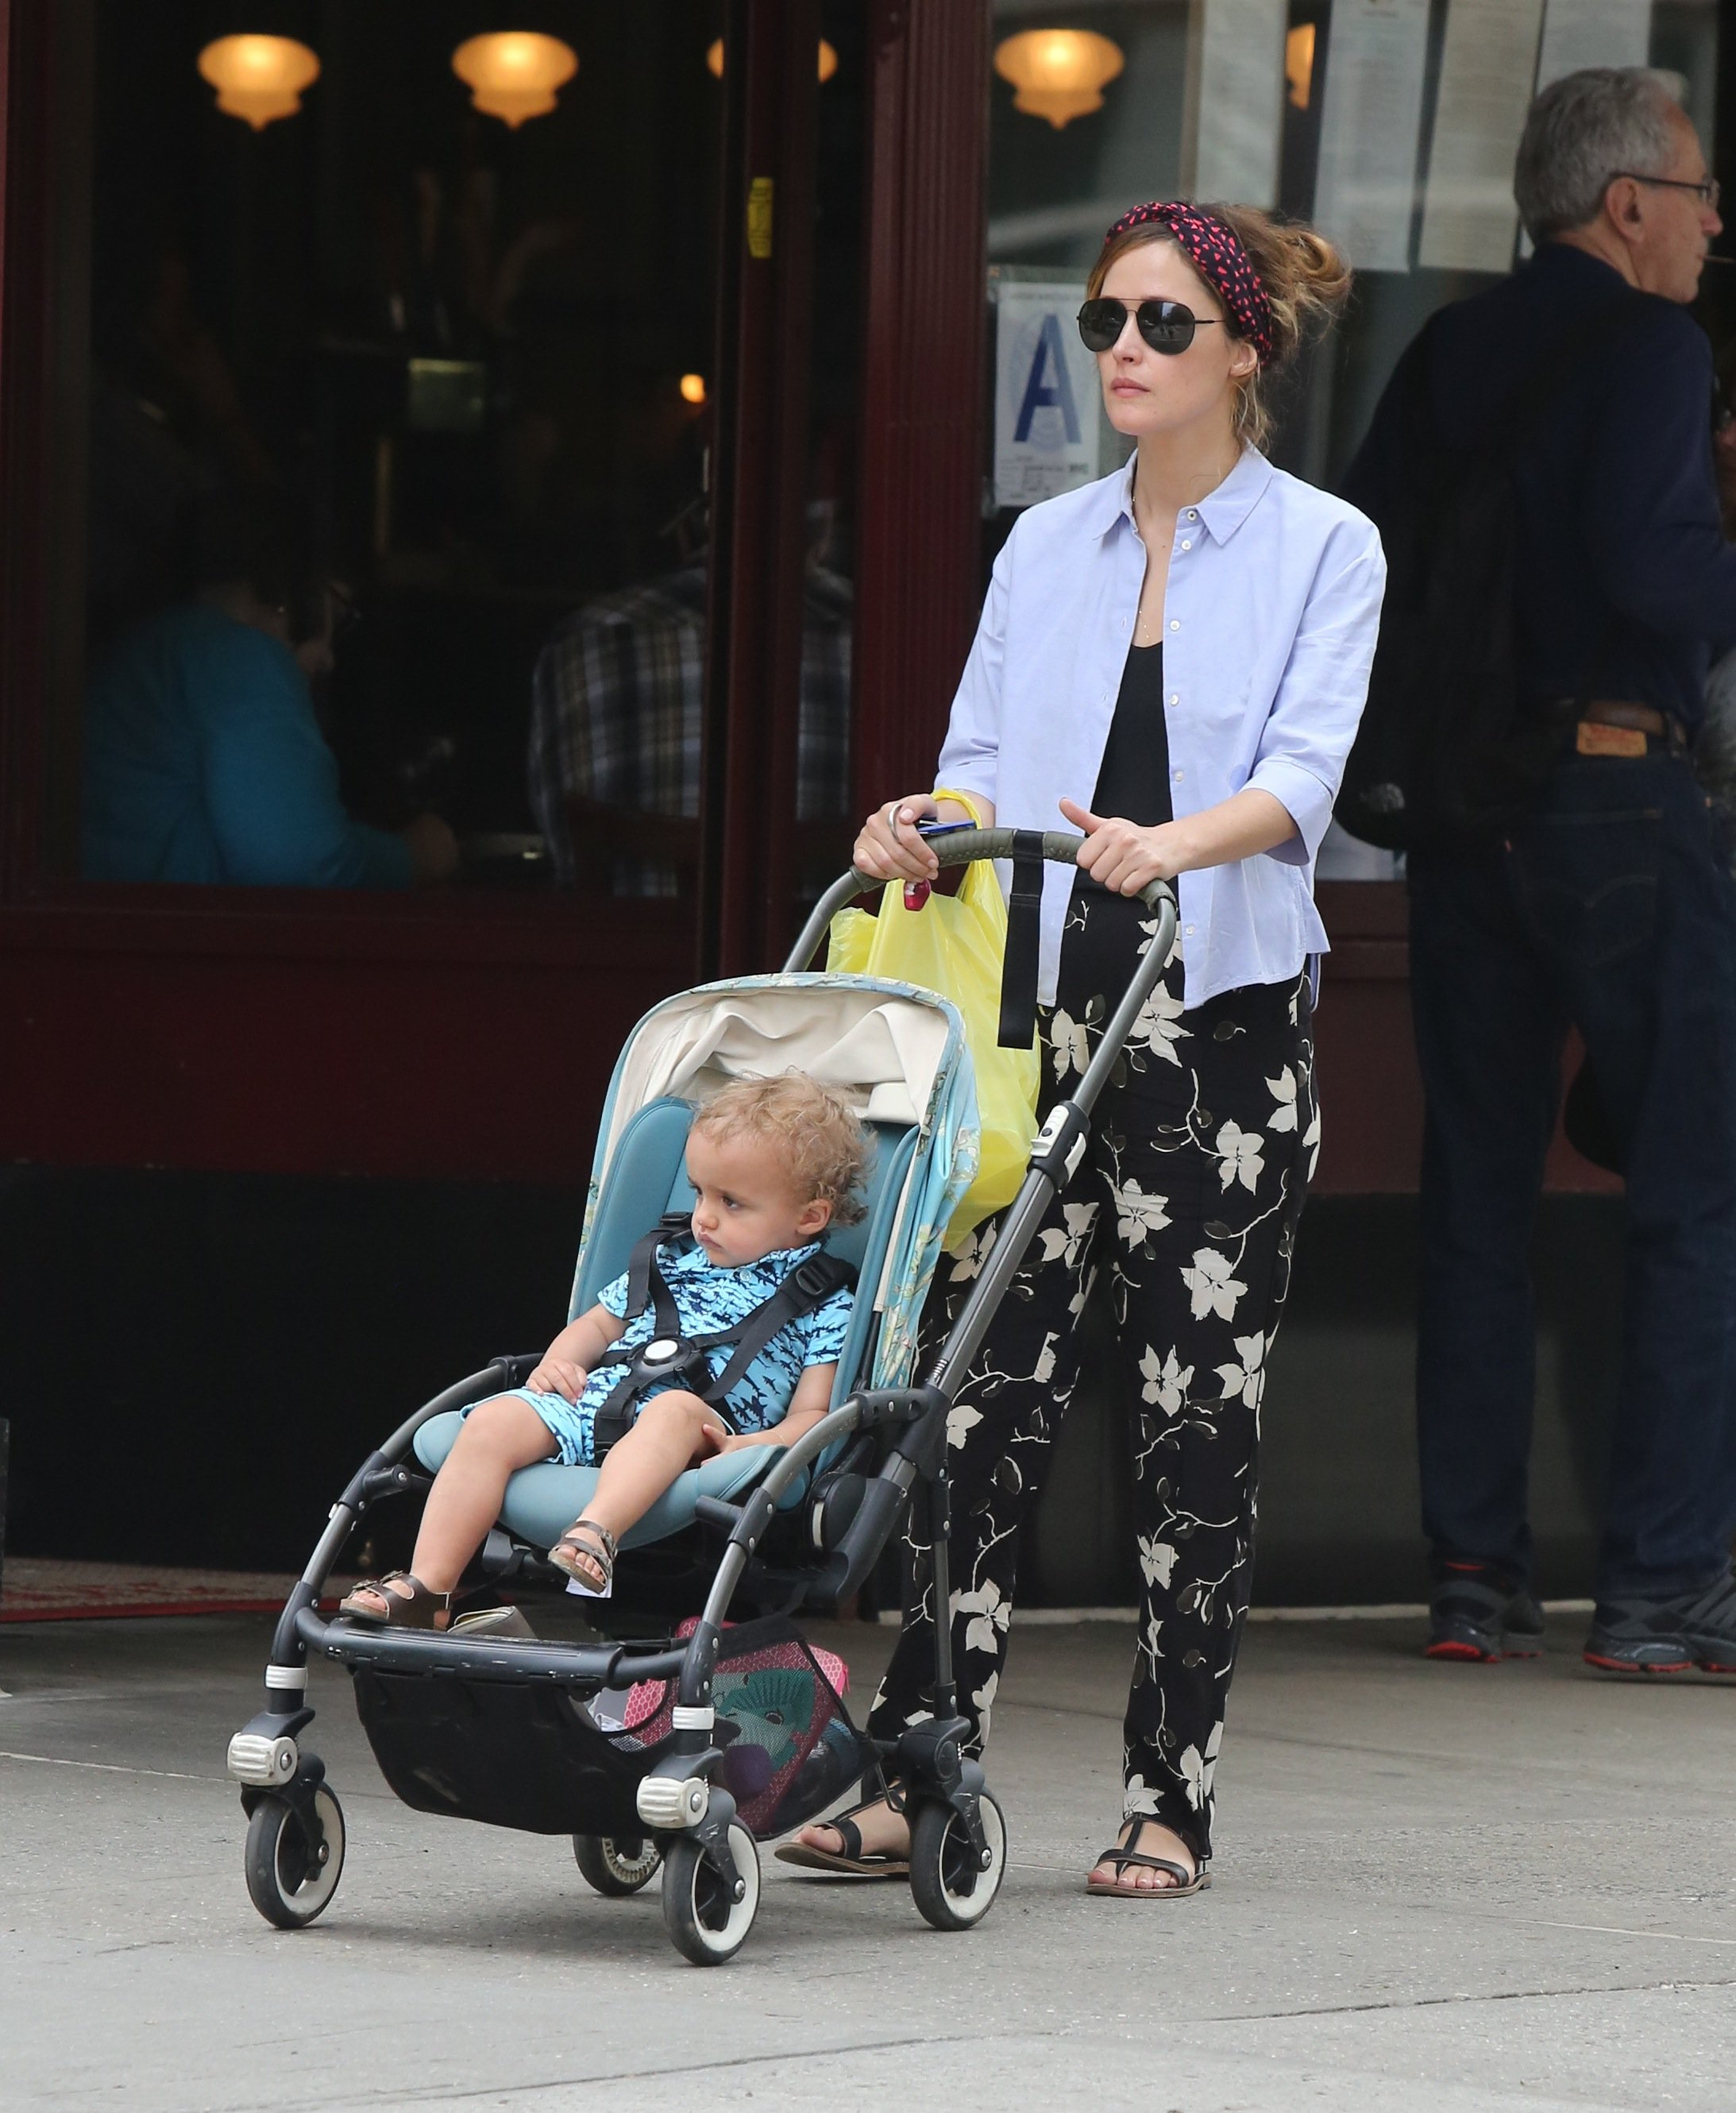 -New York, NY - 04/29/17 Rose Byrne and son Rocco Cannavale playing in the park with a friend   -PICTURED: Rose Byrne, Rocco Cannavale -, Image: 330630466, License: Rights-managed, Restrictions: , Model Release: no, Credit line: Profimedia, INSTAR Images